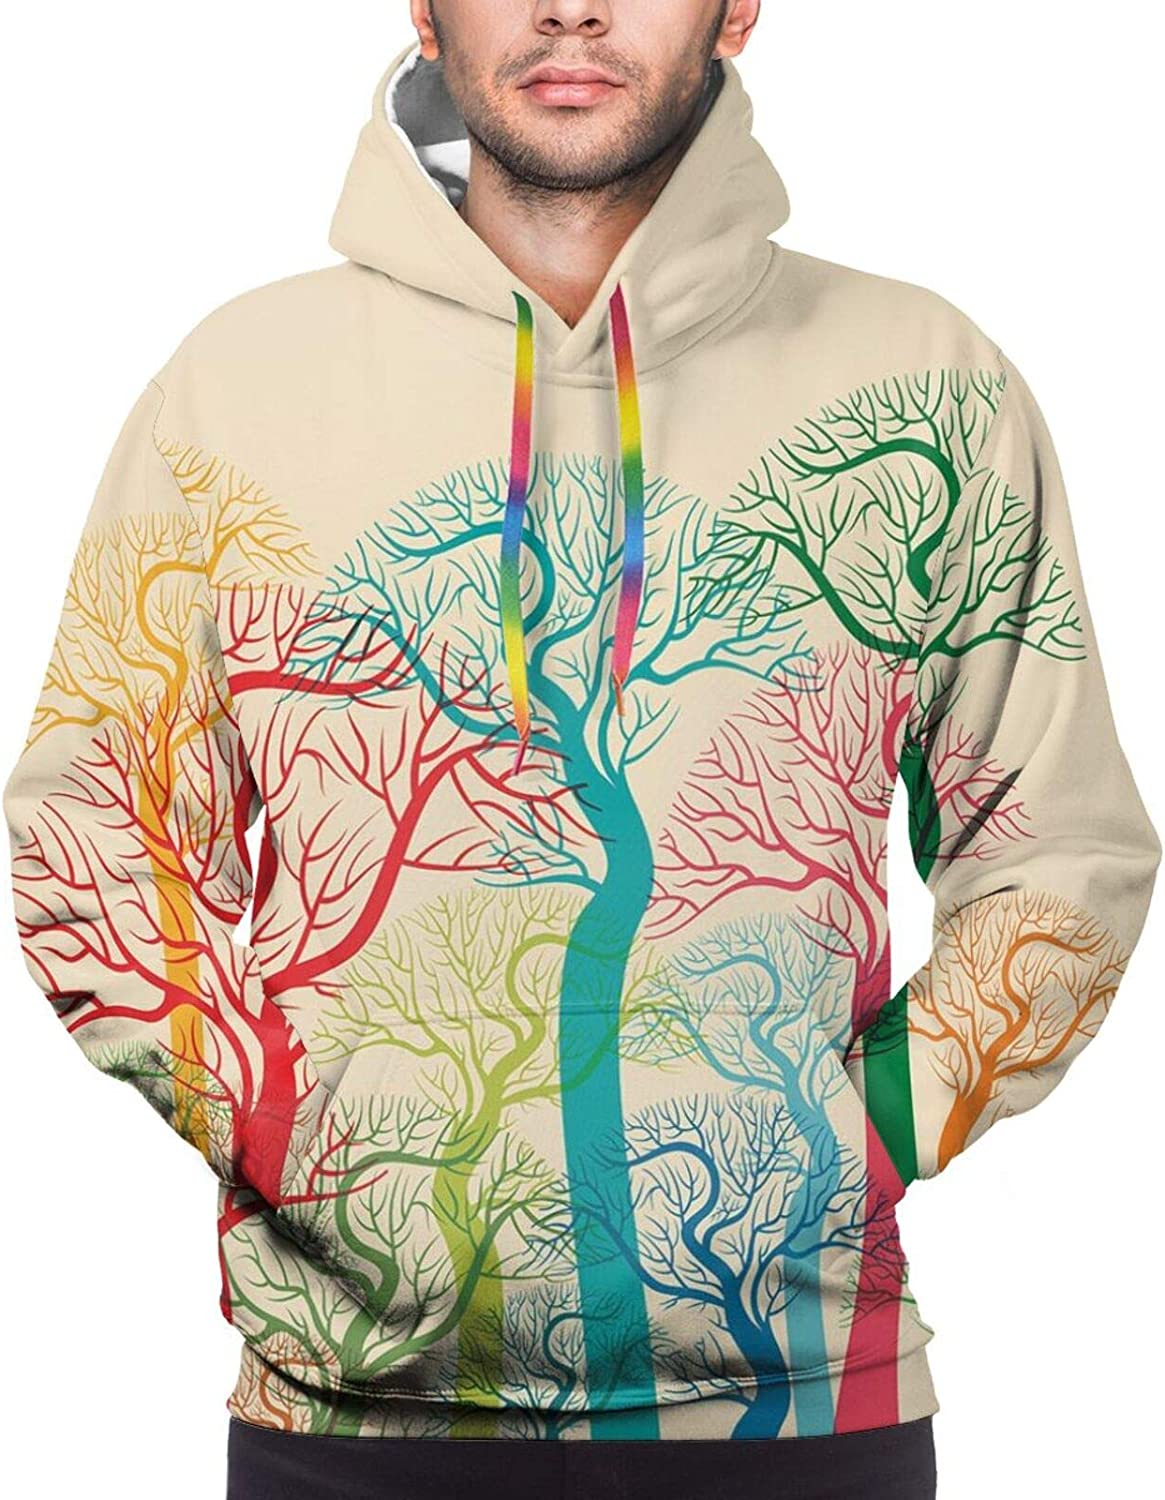 Men's Hoodies Sweatshirts,Colorful Last Sun Rays of The Day Over The Sea Waves Reflections Tropics